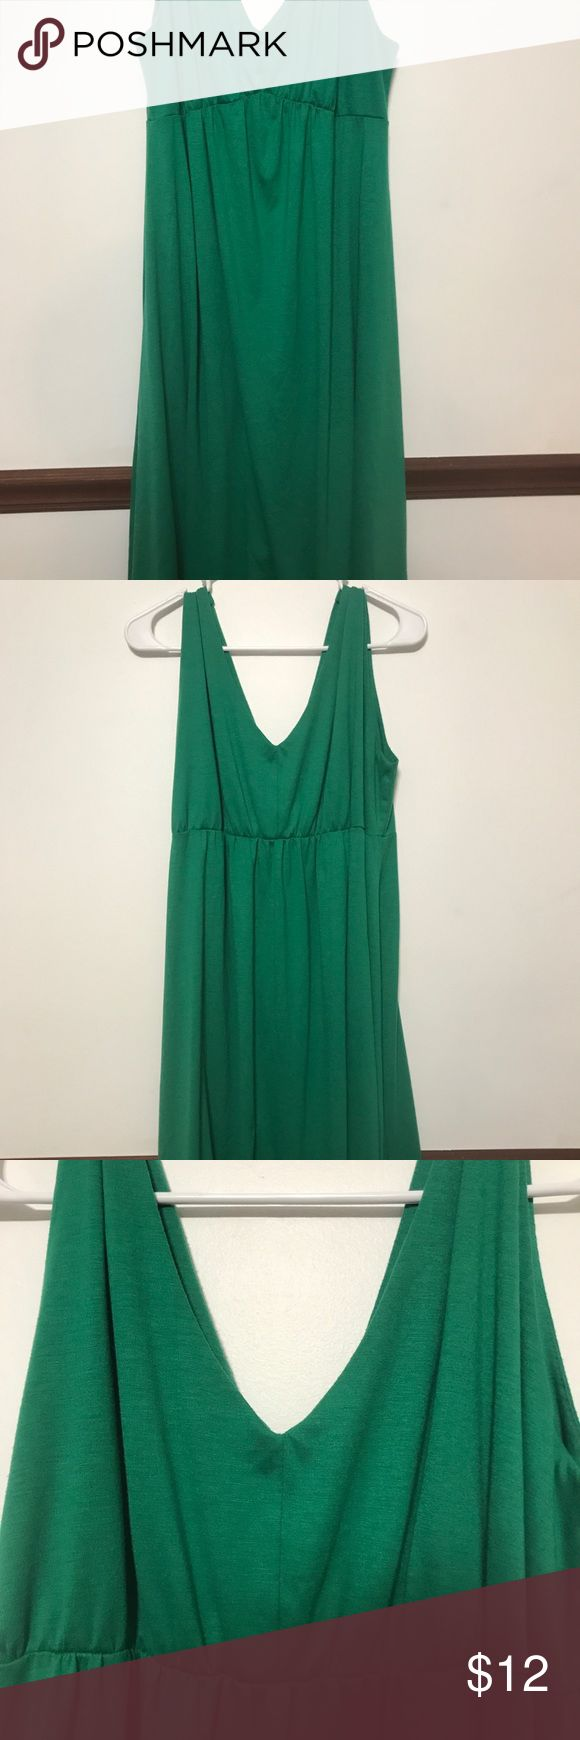 Long Elegant Legs Green Sleeveless Casual Dress L Long Elegant Legs Green Sleeveless Casual Dress Large Long Elegant Legs Dresses